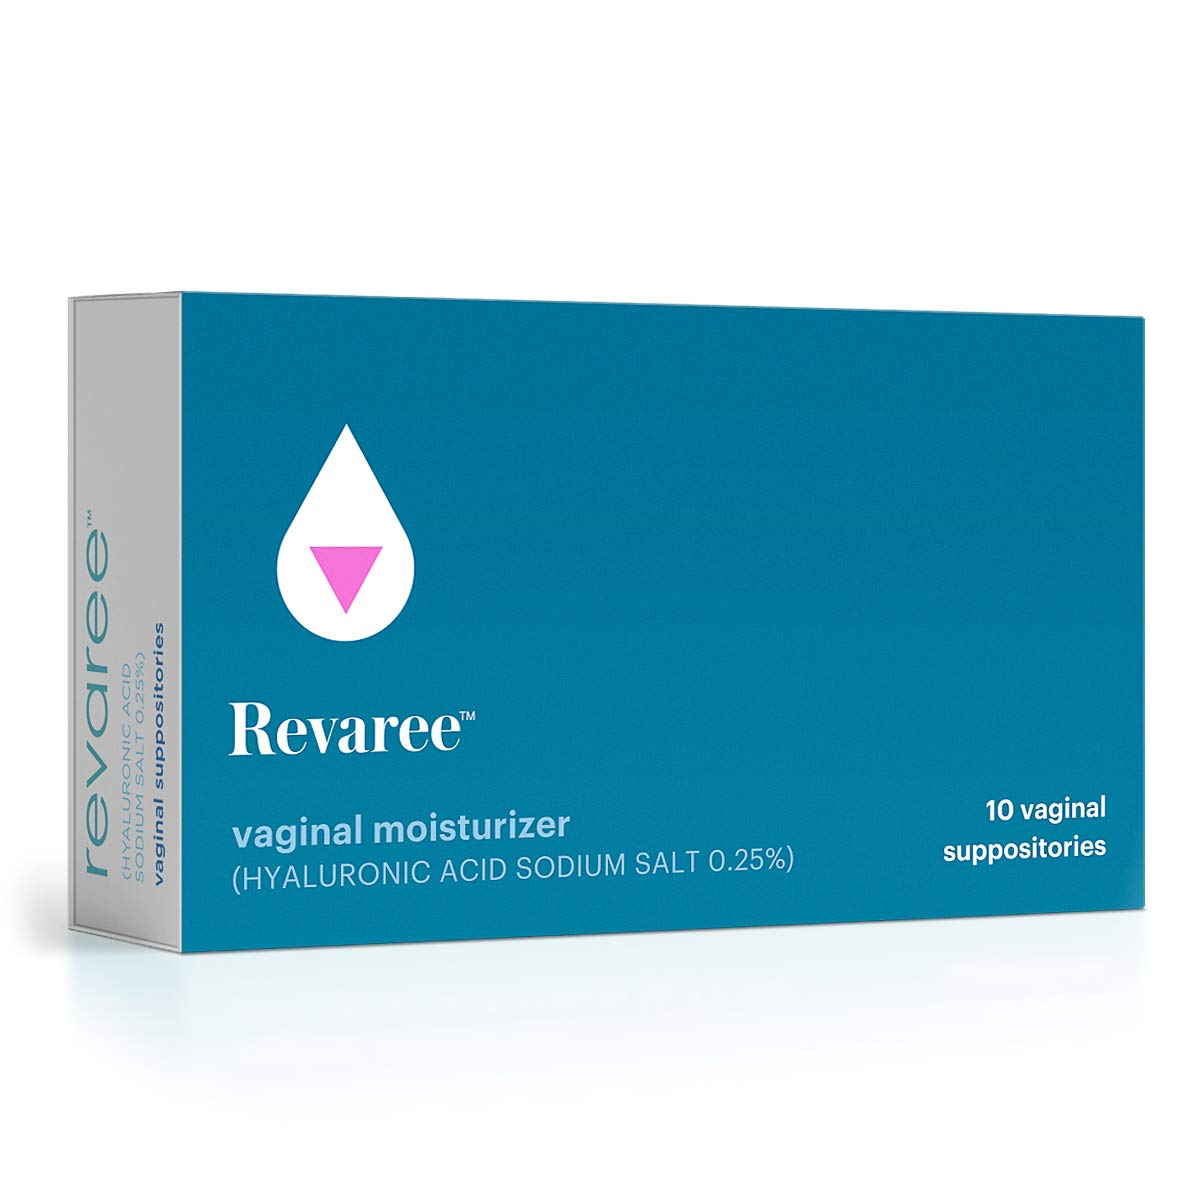 Bonafide - Revaree Hyaluronic Acid for Vaginal Dryness - Non-Hormonal, Paraben-Free (10 Vaginal Inserts)